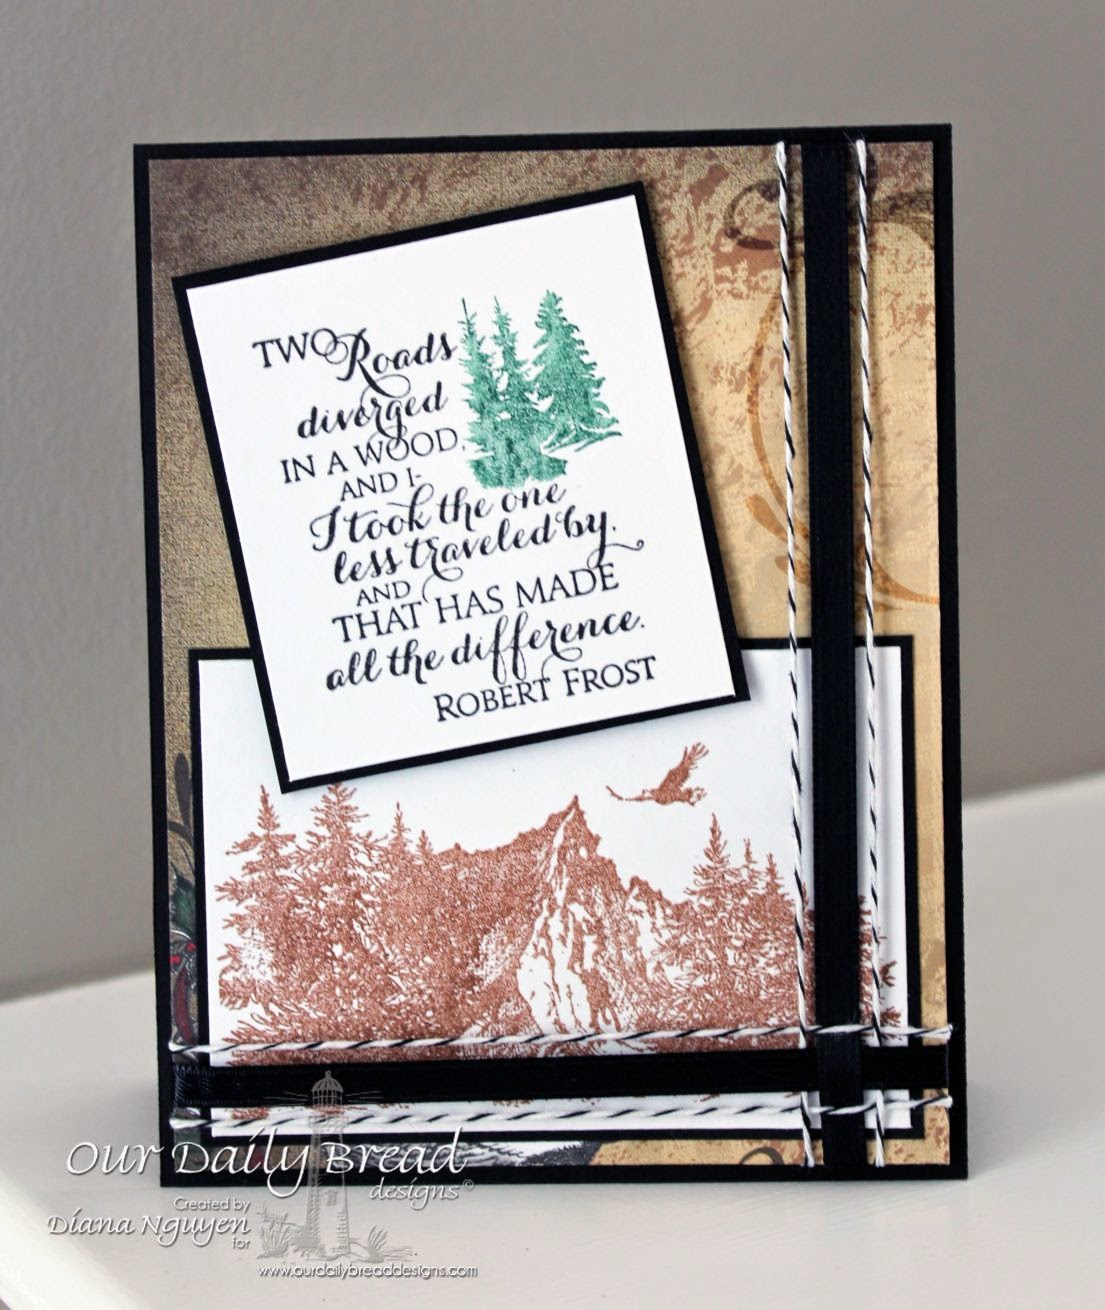 Our Daily Bread Designs, Quote Collection 1, Keep Climbing, Christmas Paper Collection 2013, Designed by Diana Nguyen